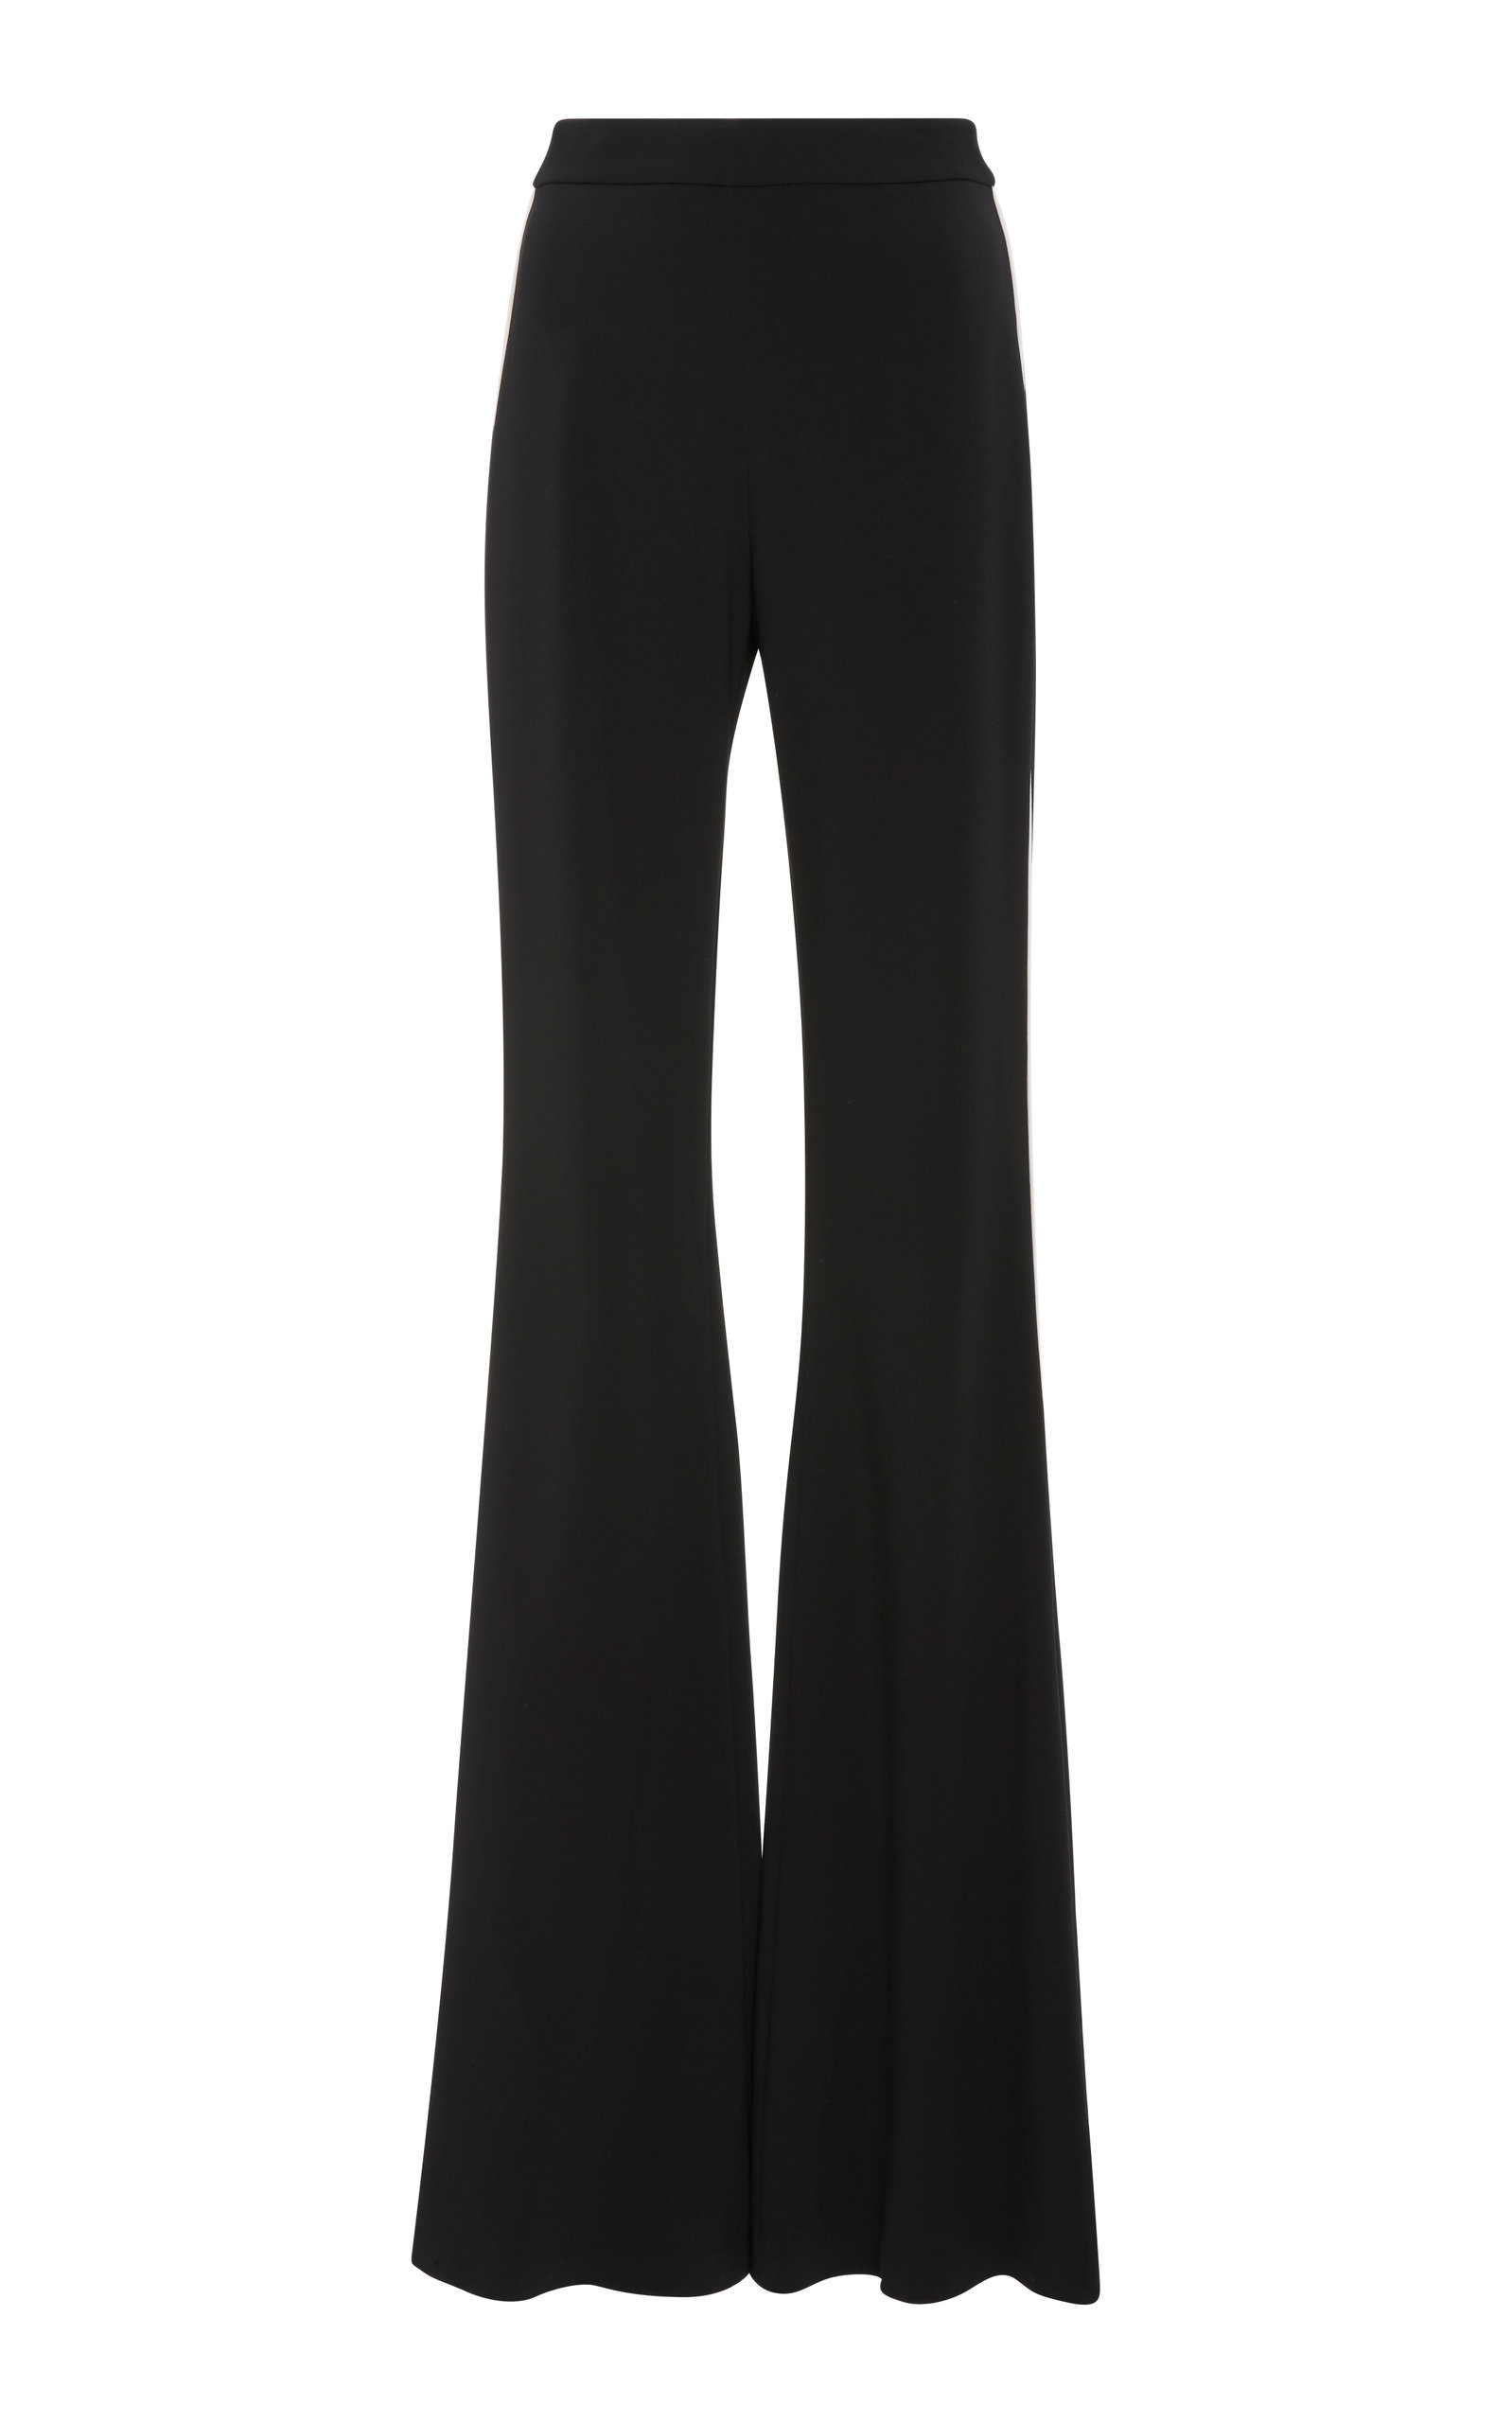 Flare Pant Faille Tuxedo Brandon Maxwell Outlet Wiki Sale Low Shipping ZwEJkSc3Q